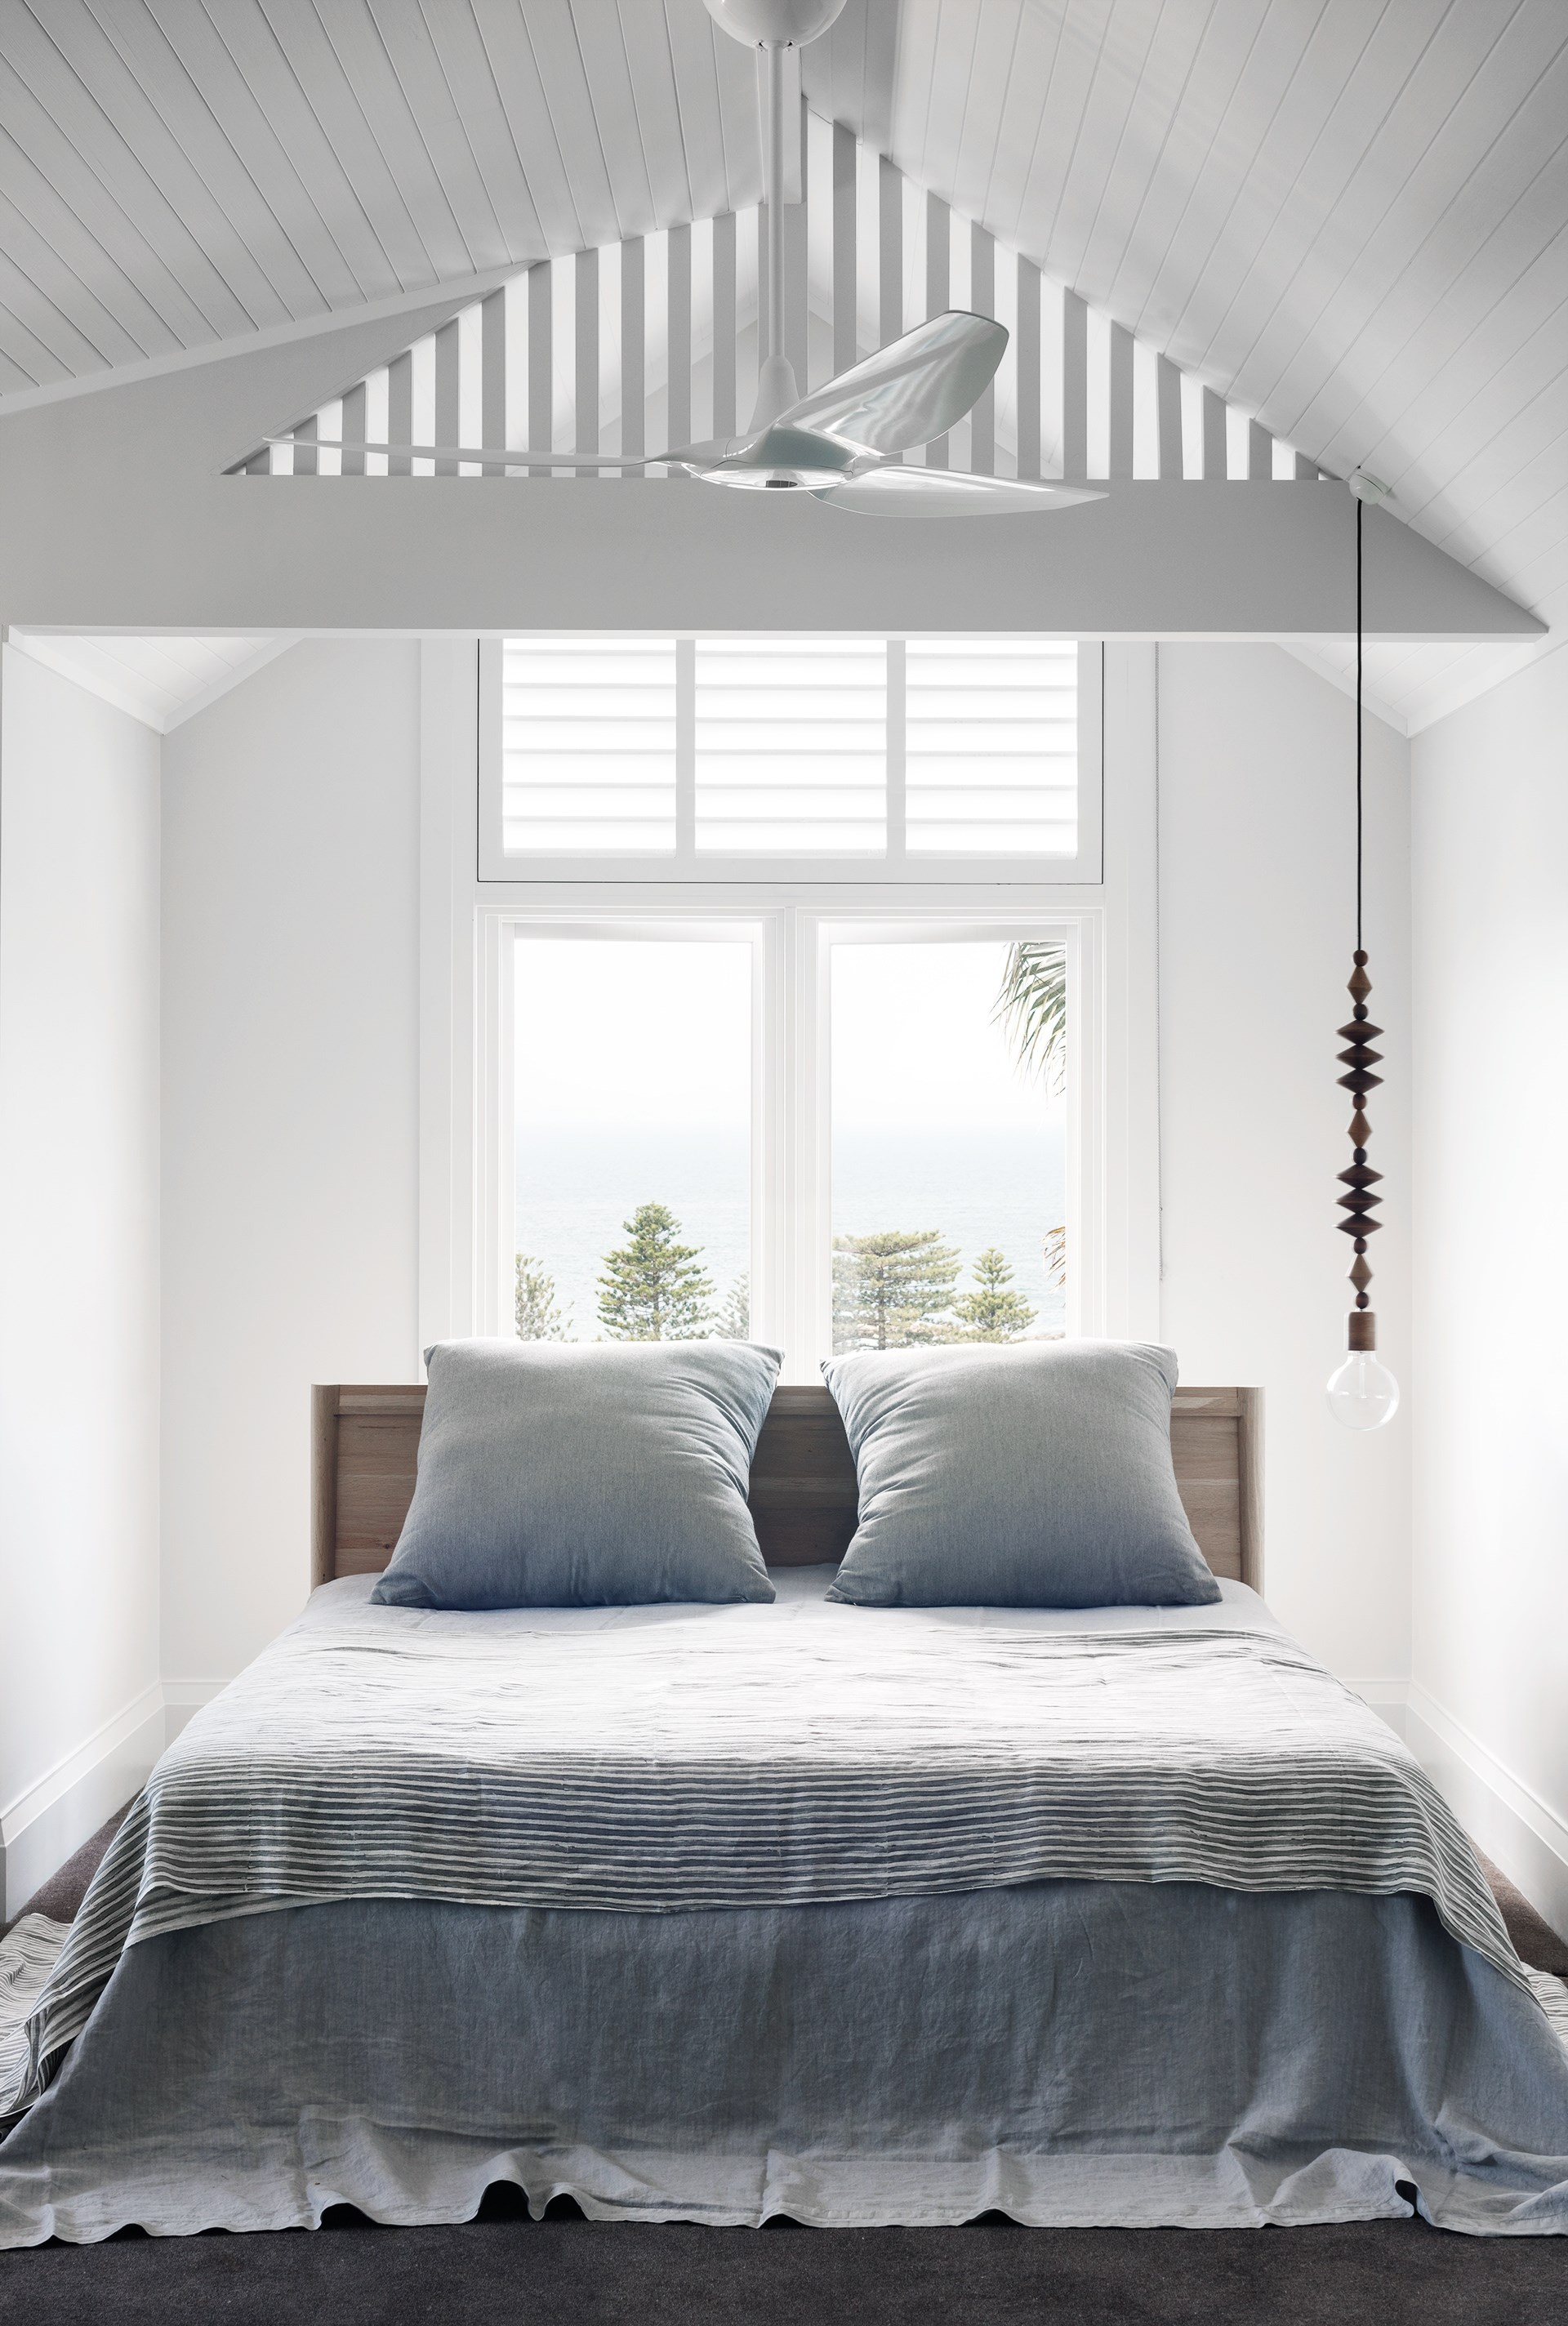 This [seaside sandstone bungalow](http://www.homestolove.com.au/sandstone-house-restored-to-former-glory-3731) has been restored with its heritage in mind. New sandstone has been added as well as an additional story that houses this bright and airy master bedroom with views over Pittwater. Photo: Nicholas Watt / Belle